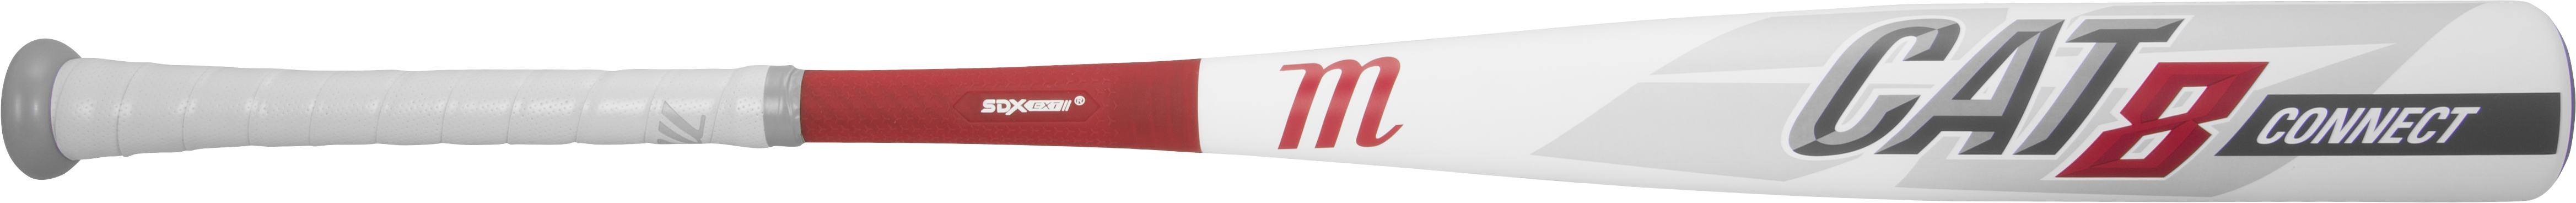 Marucci CAT8 Connect (-3) Bat